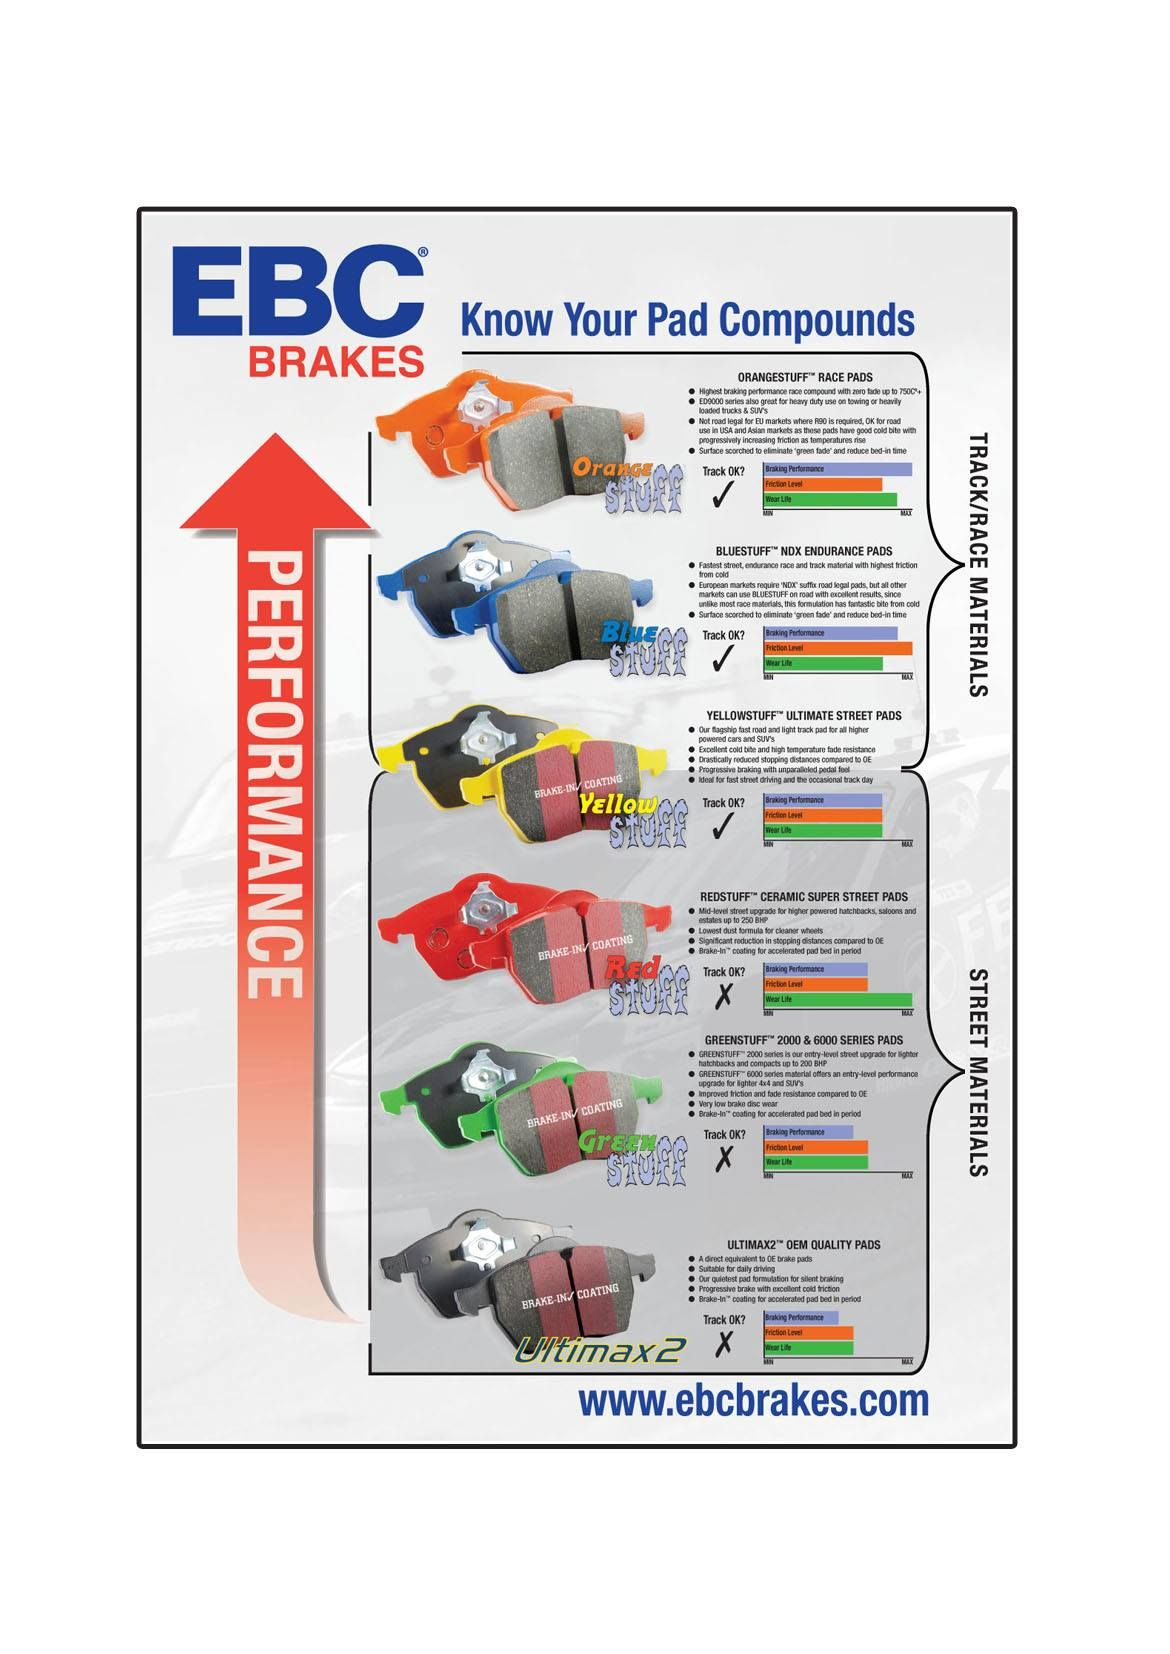 Ebc Brake Pads >> Know Your Ebc Brakes Compounds Performance Chart Automotive